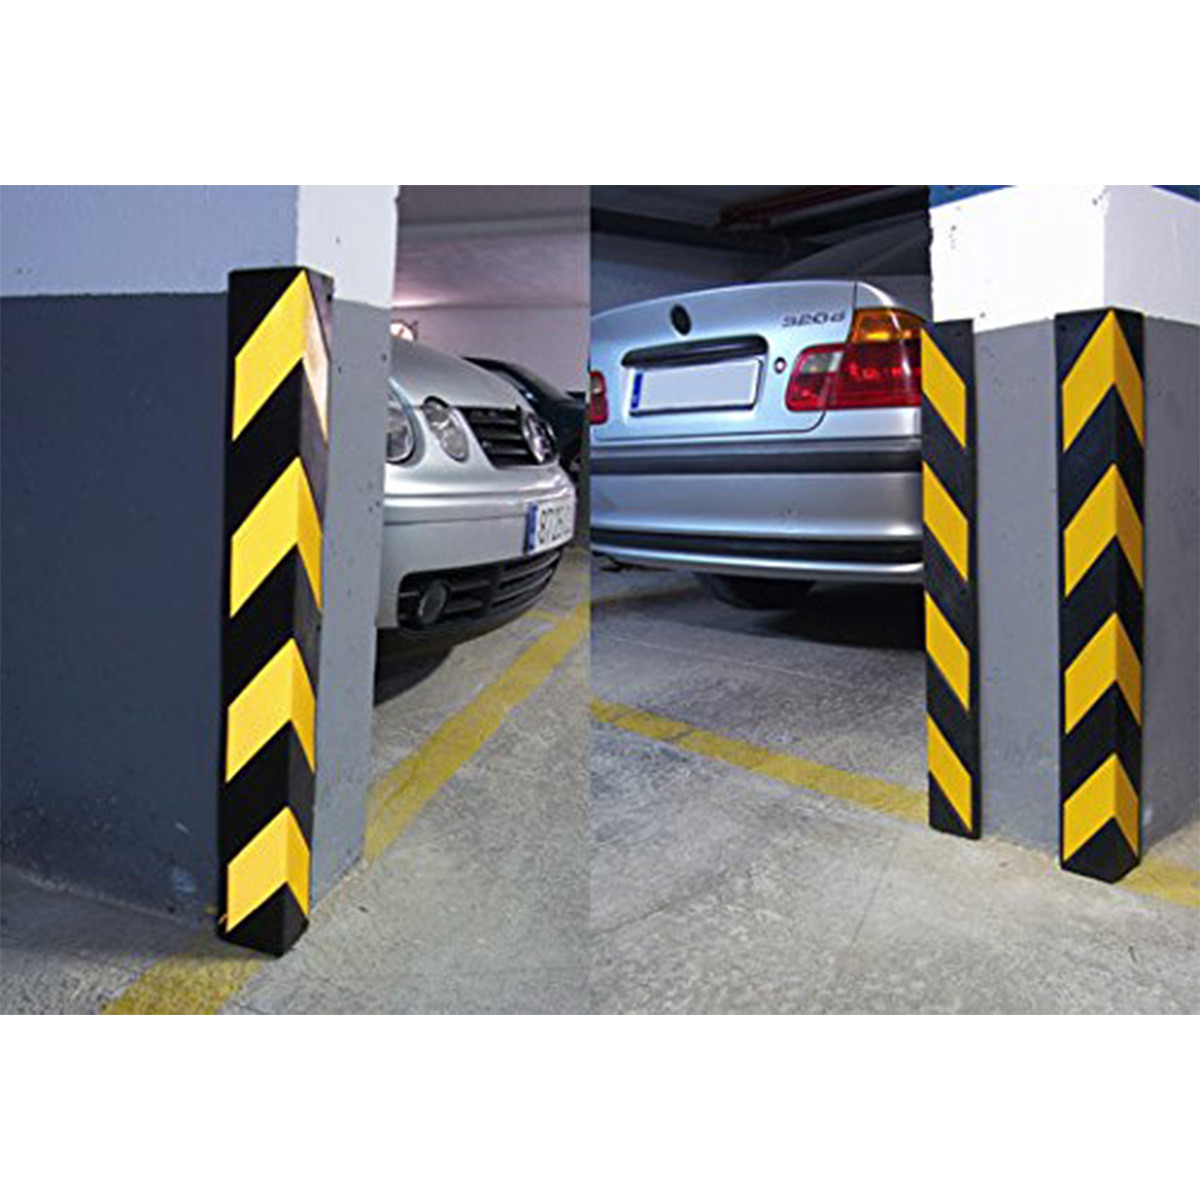 Rubber Corner Guard Wall Protectors L Shaped Rounded